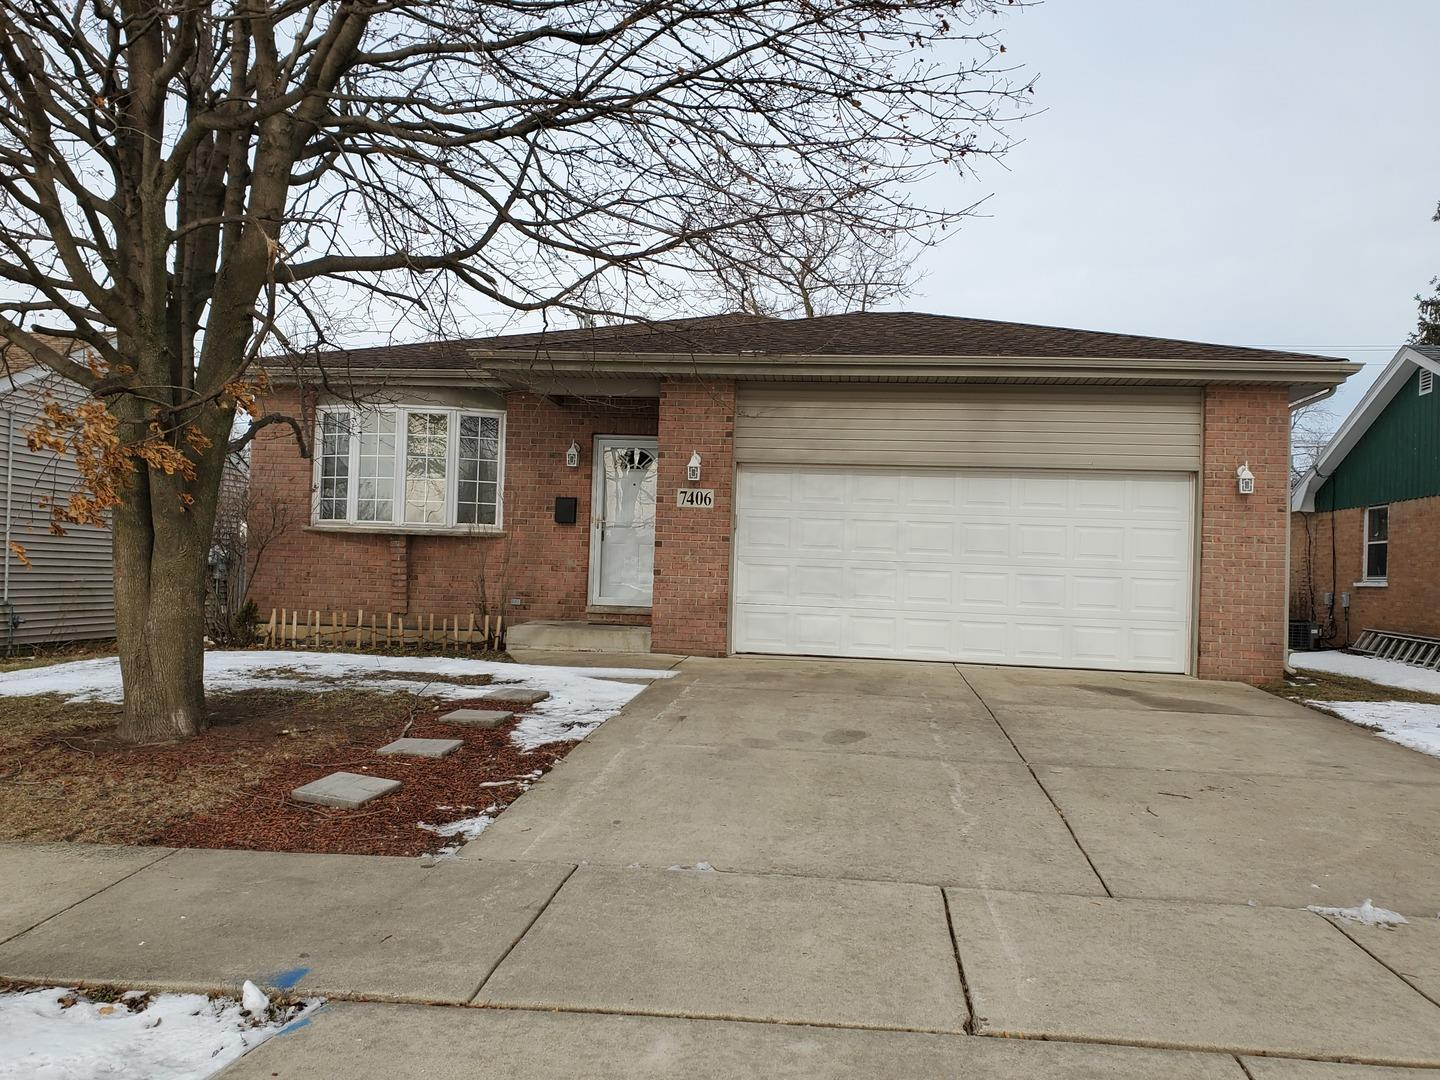 7406 West 115th Street West, Worth, IL 60482 - #: 10621820